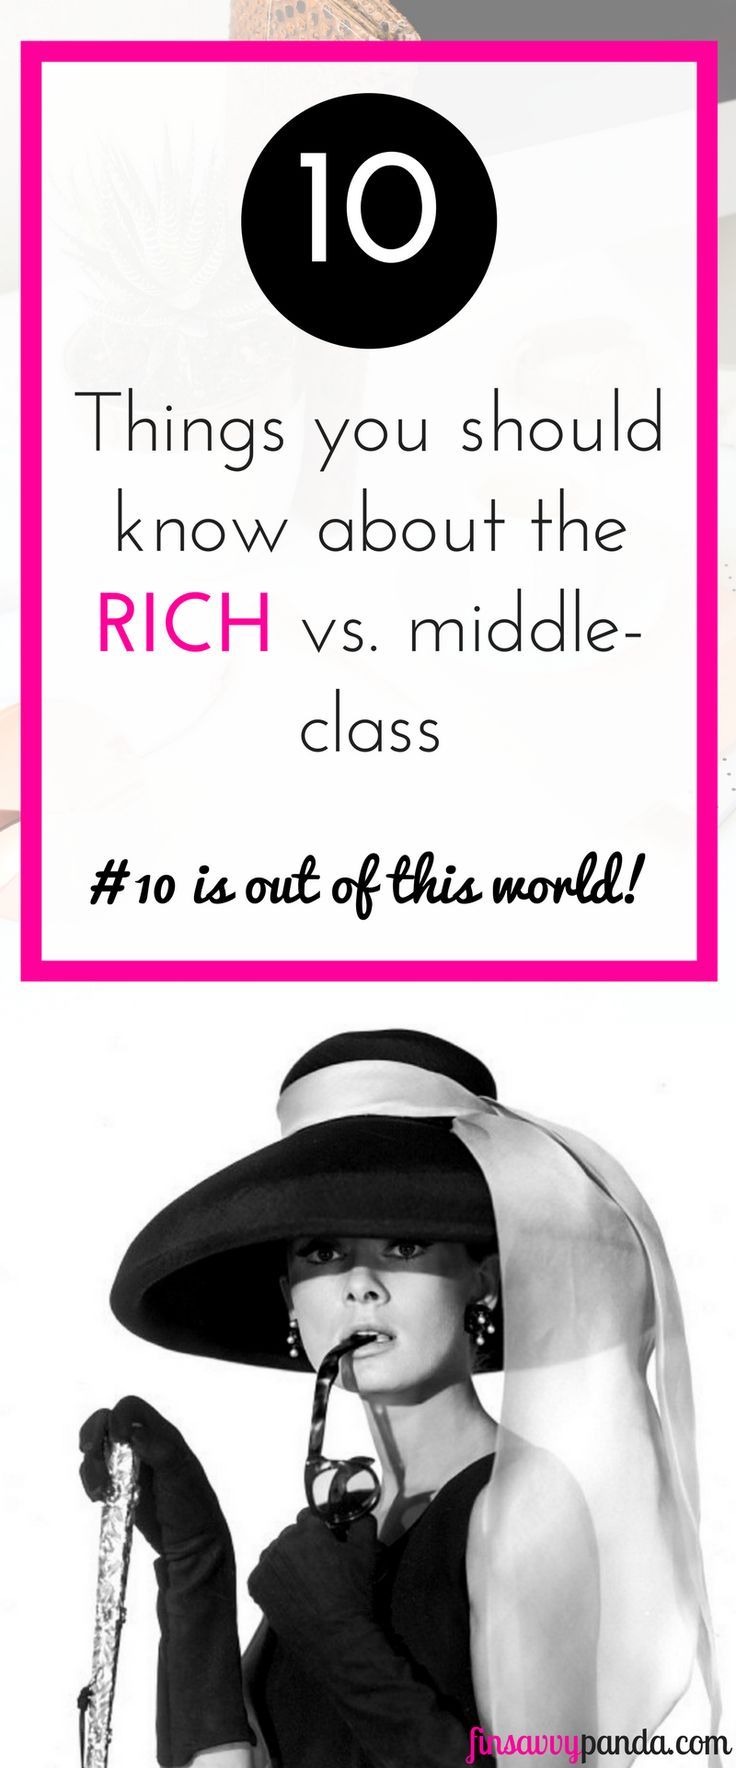 Do you have a rich mindset? Come and find out if you have a mindset of Bill Gates, Steve Jobs, or Warren Buffett. See how you score on a scale of 1 to 10. Wanna increase your chances of becoming rich? Read more at finsavvypanda.com. rich mindset quotes   rich mindset money   how to become rich   money quotes   wealth and luxury   entrepreneur inspiration   millennial #Finances